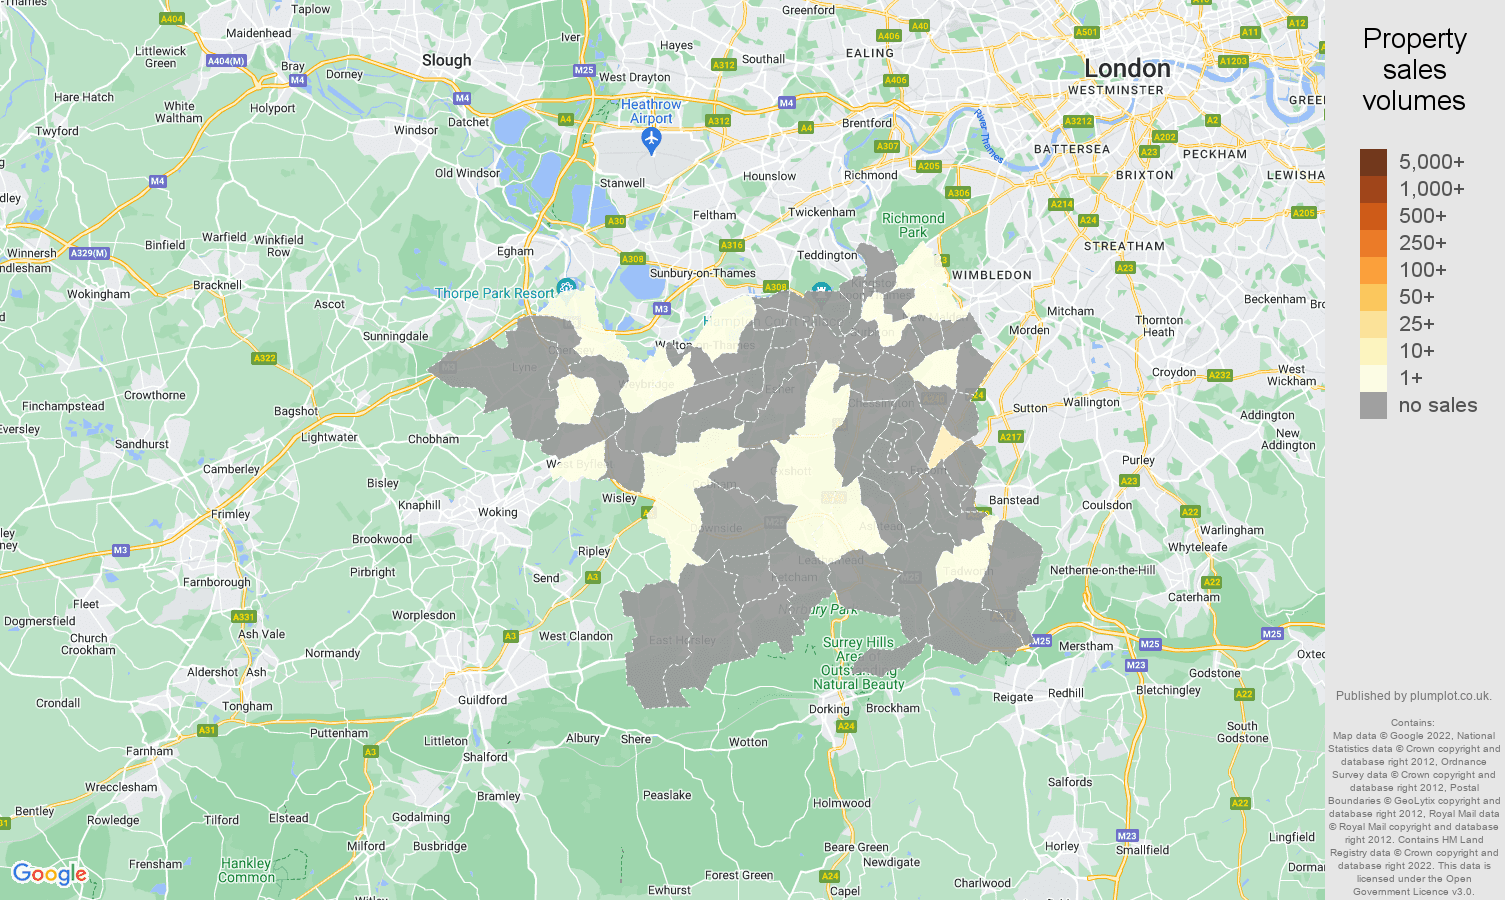 Kingston upon Thames map of sales of new properties